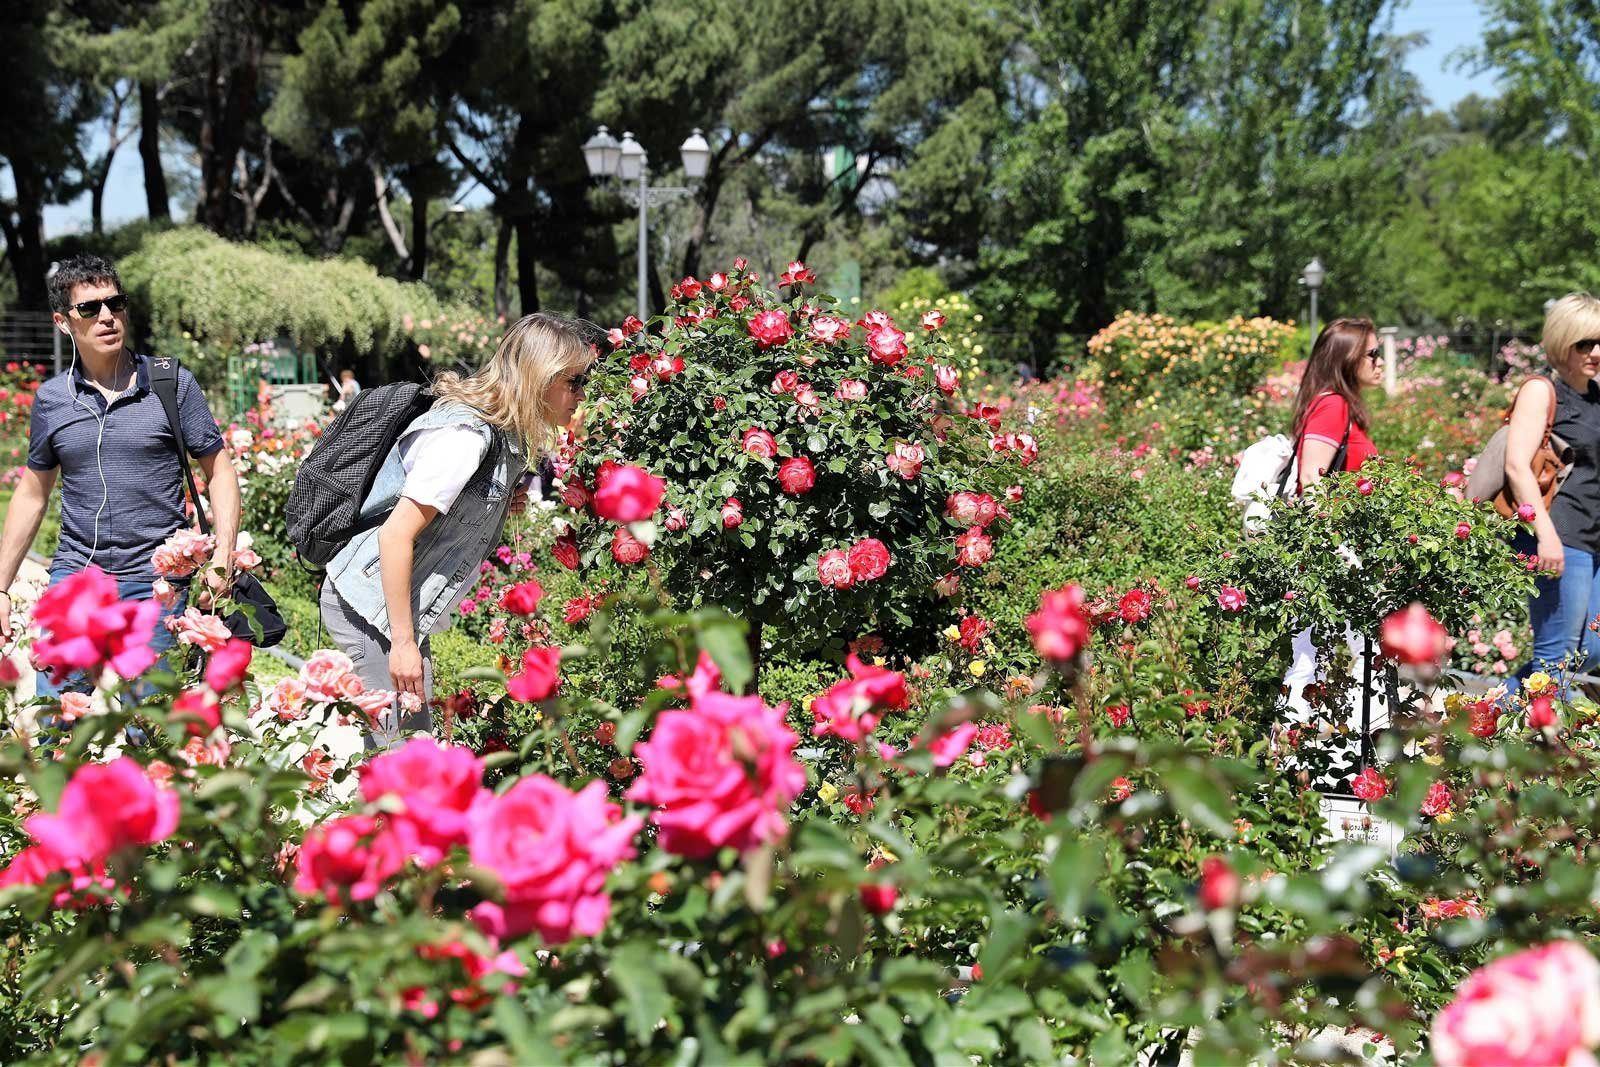 How to walk through the rose garden in the city park in Madrid